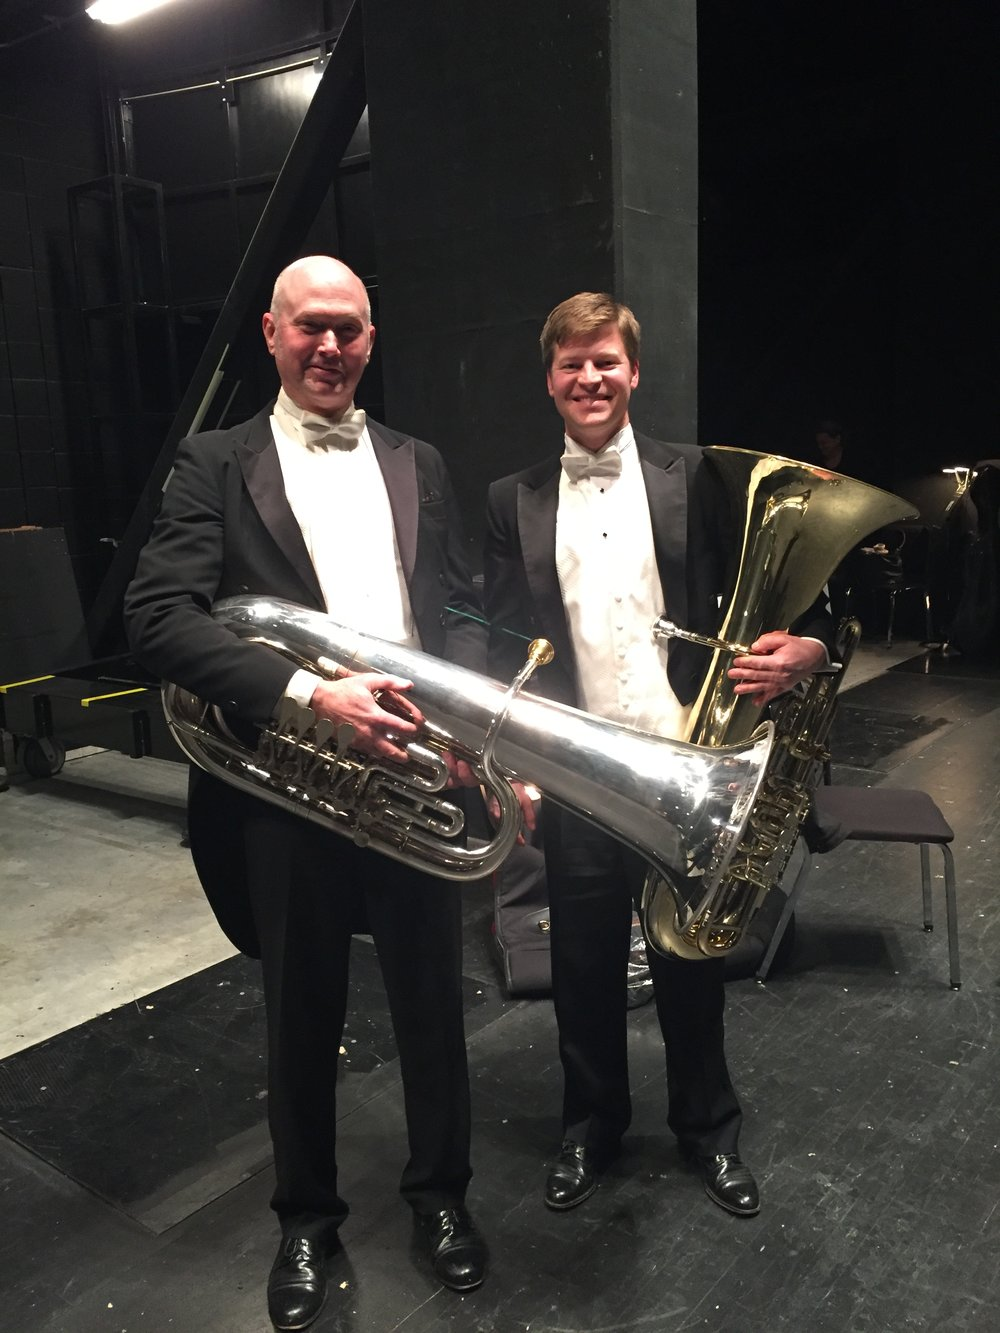 Ted Cox, Principal Tuba Oklahoma City Philharmonic, and I after Symphonie Fantastique.